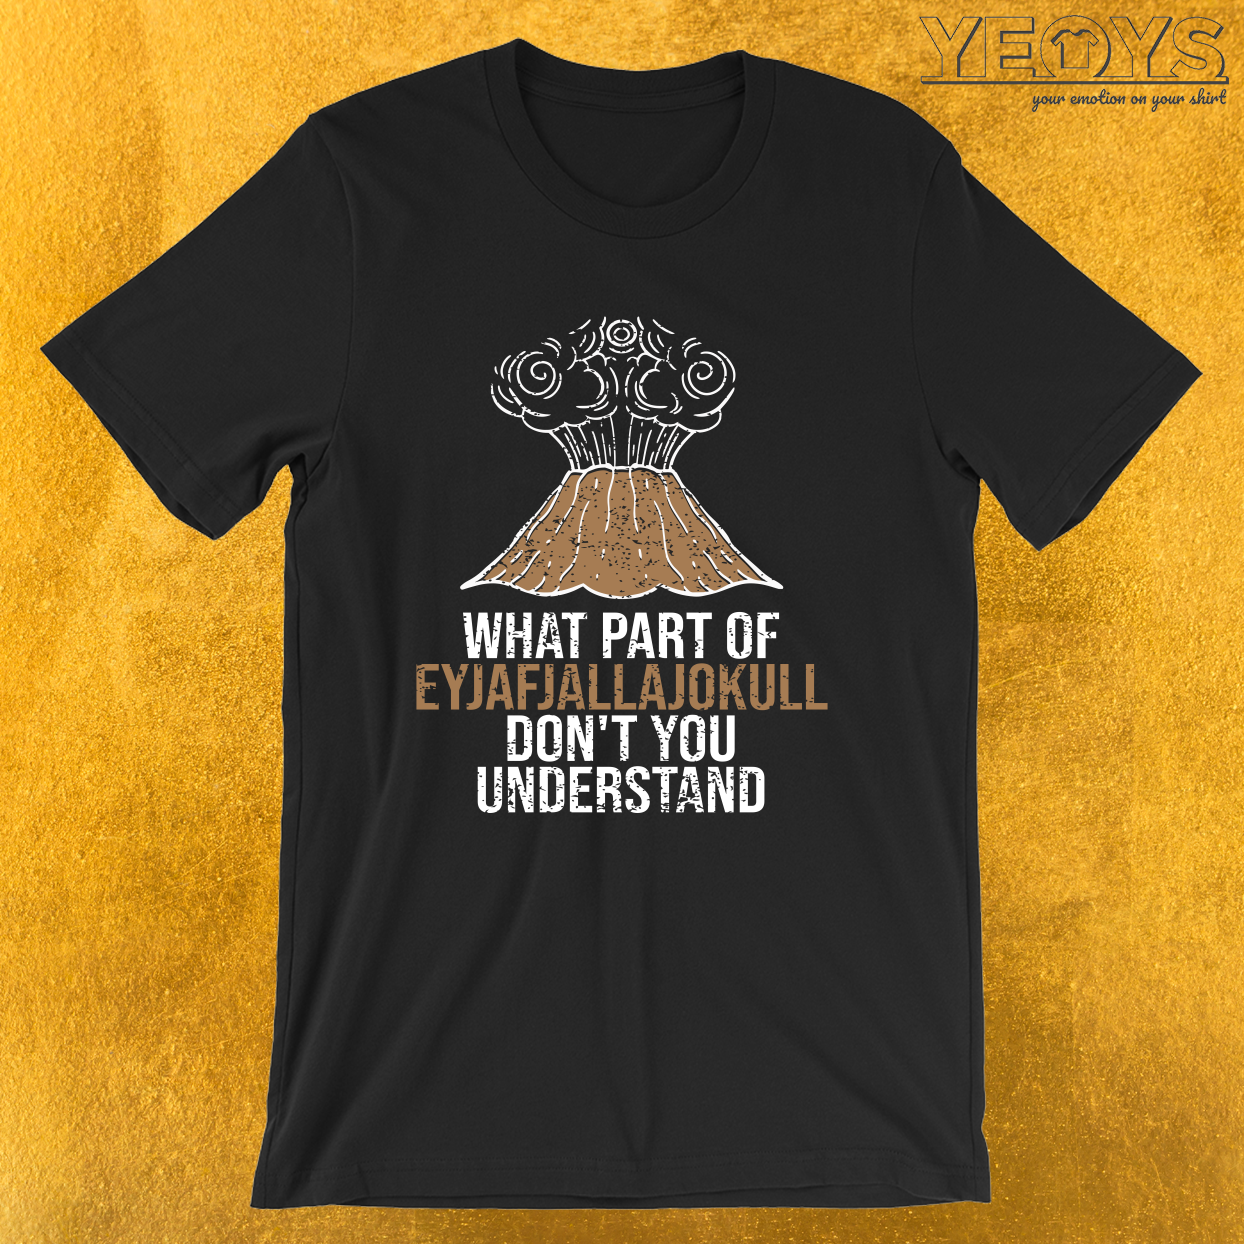 What Part Of Eyjafjallajokull Don't You Understand – Volcano Tee